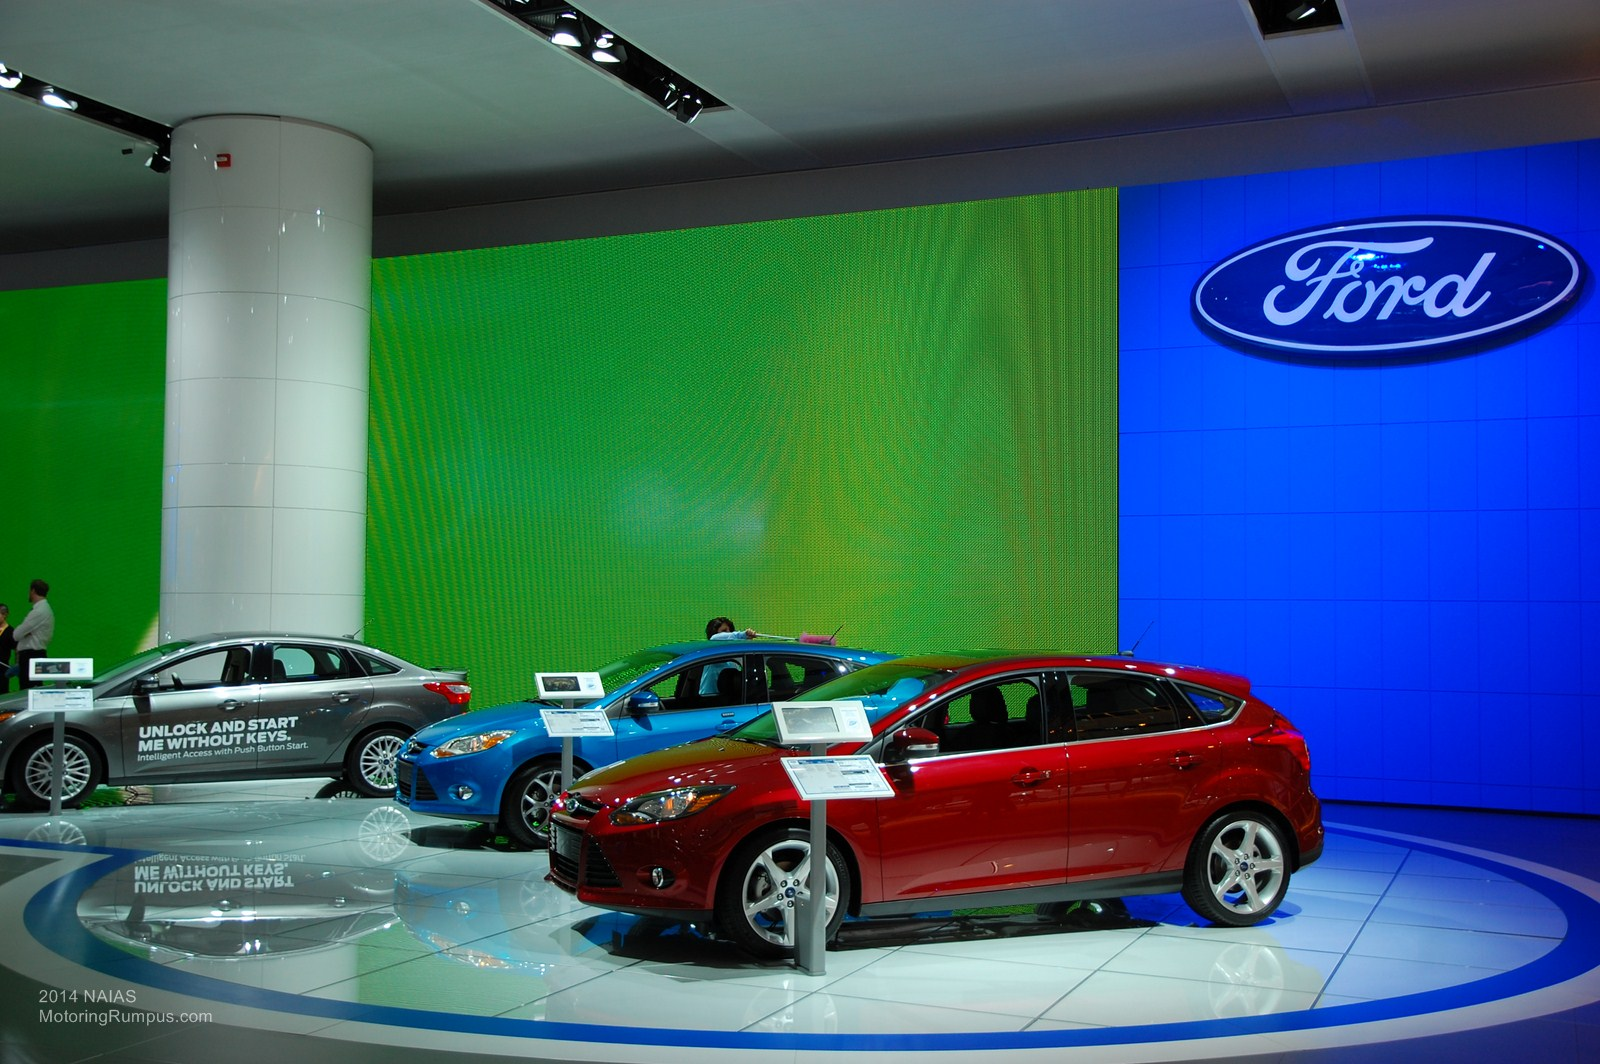 2014 NAIAS Ford Focus Ecoboost